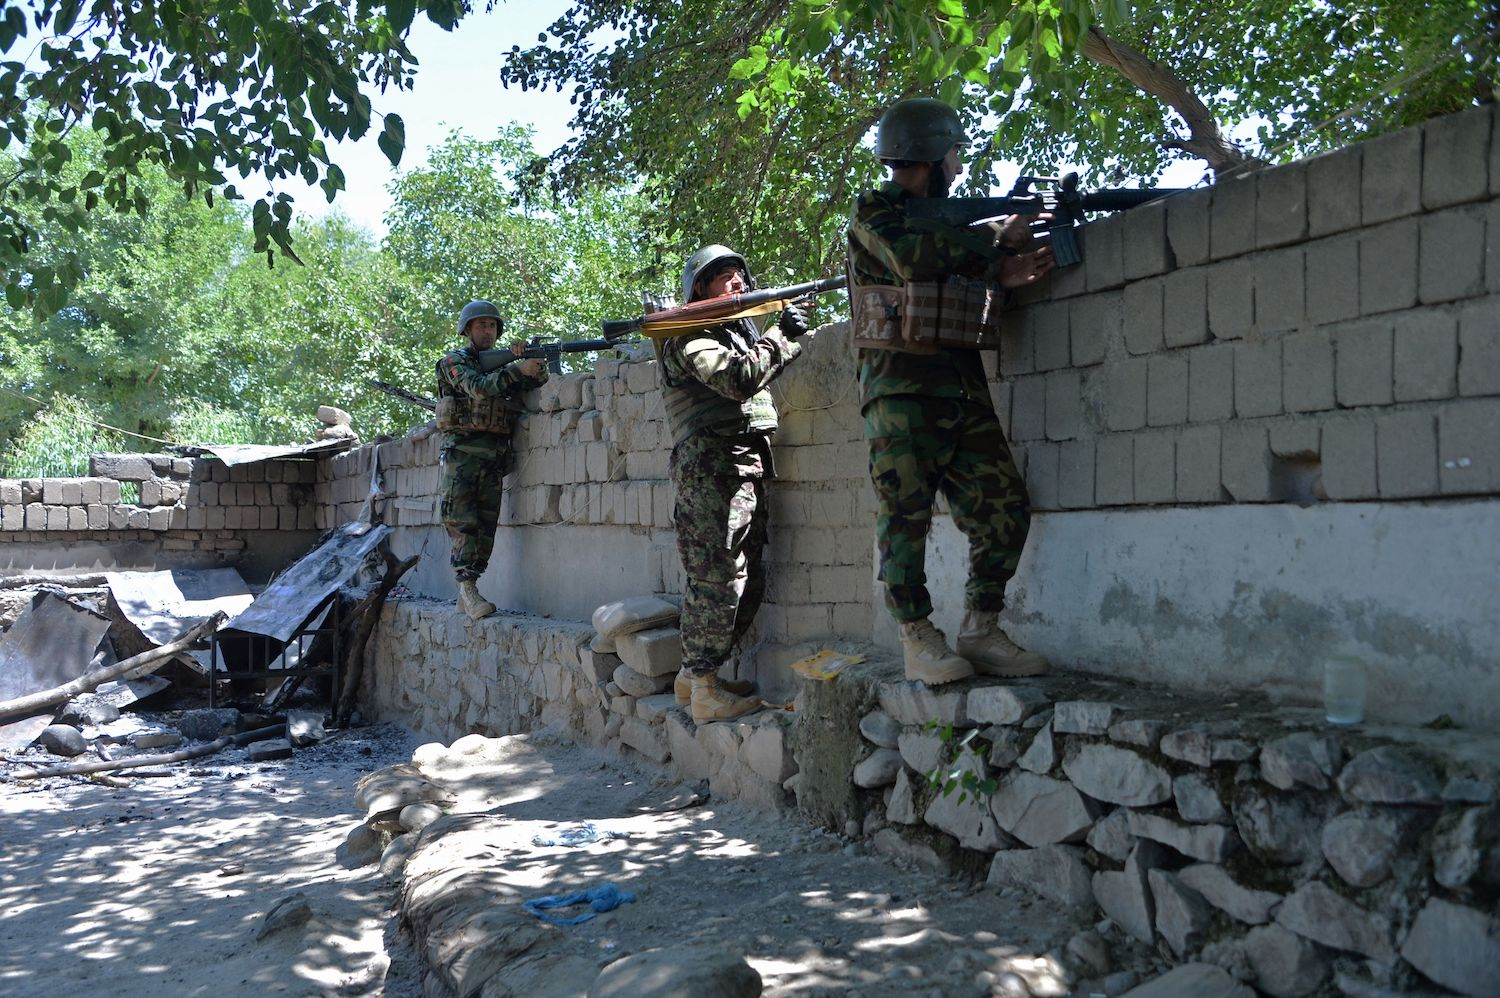 Afghan security forces take their positions during a clash with Afghan forces in Mihtarlam, Afghanistan, on May 24.